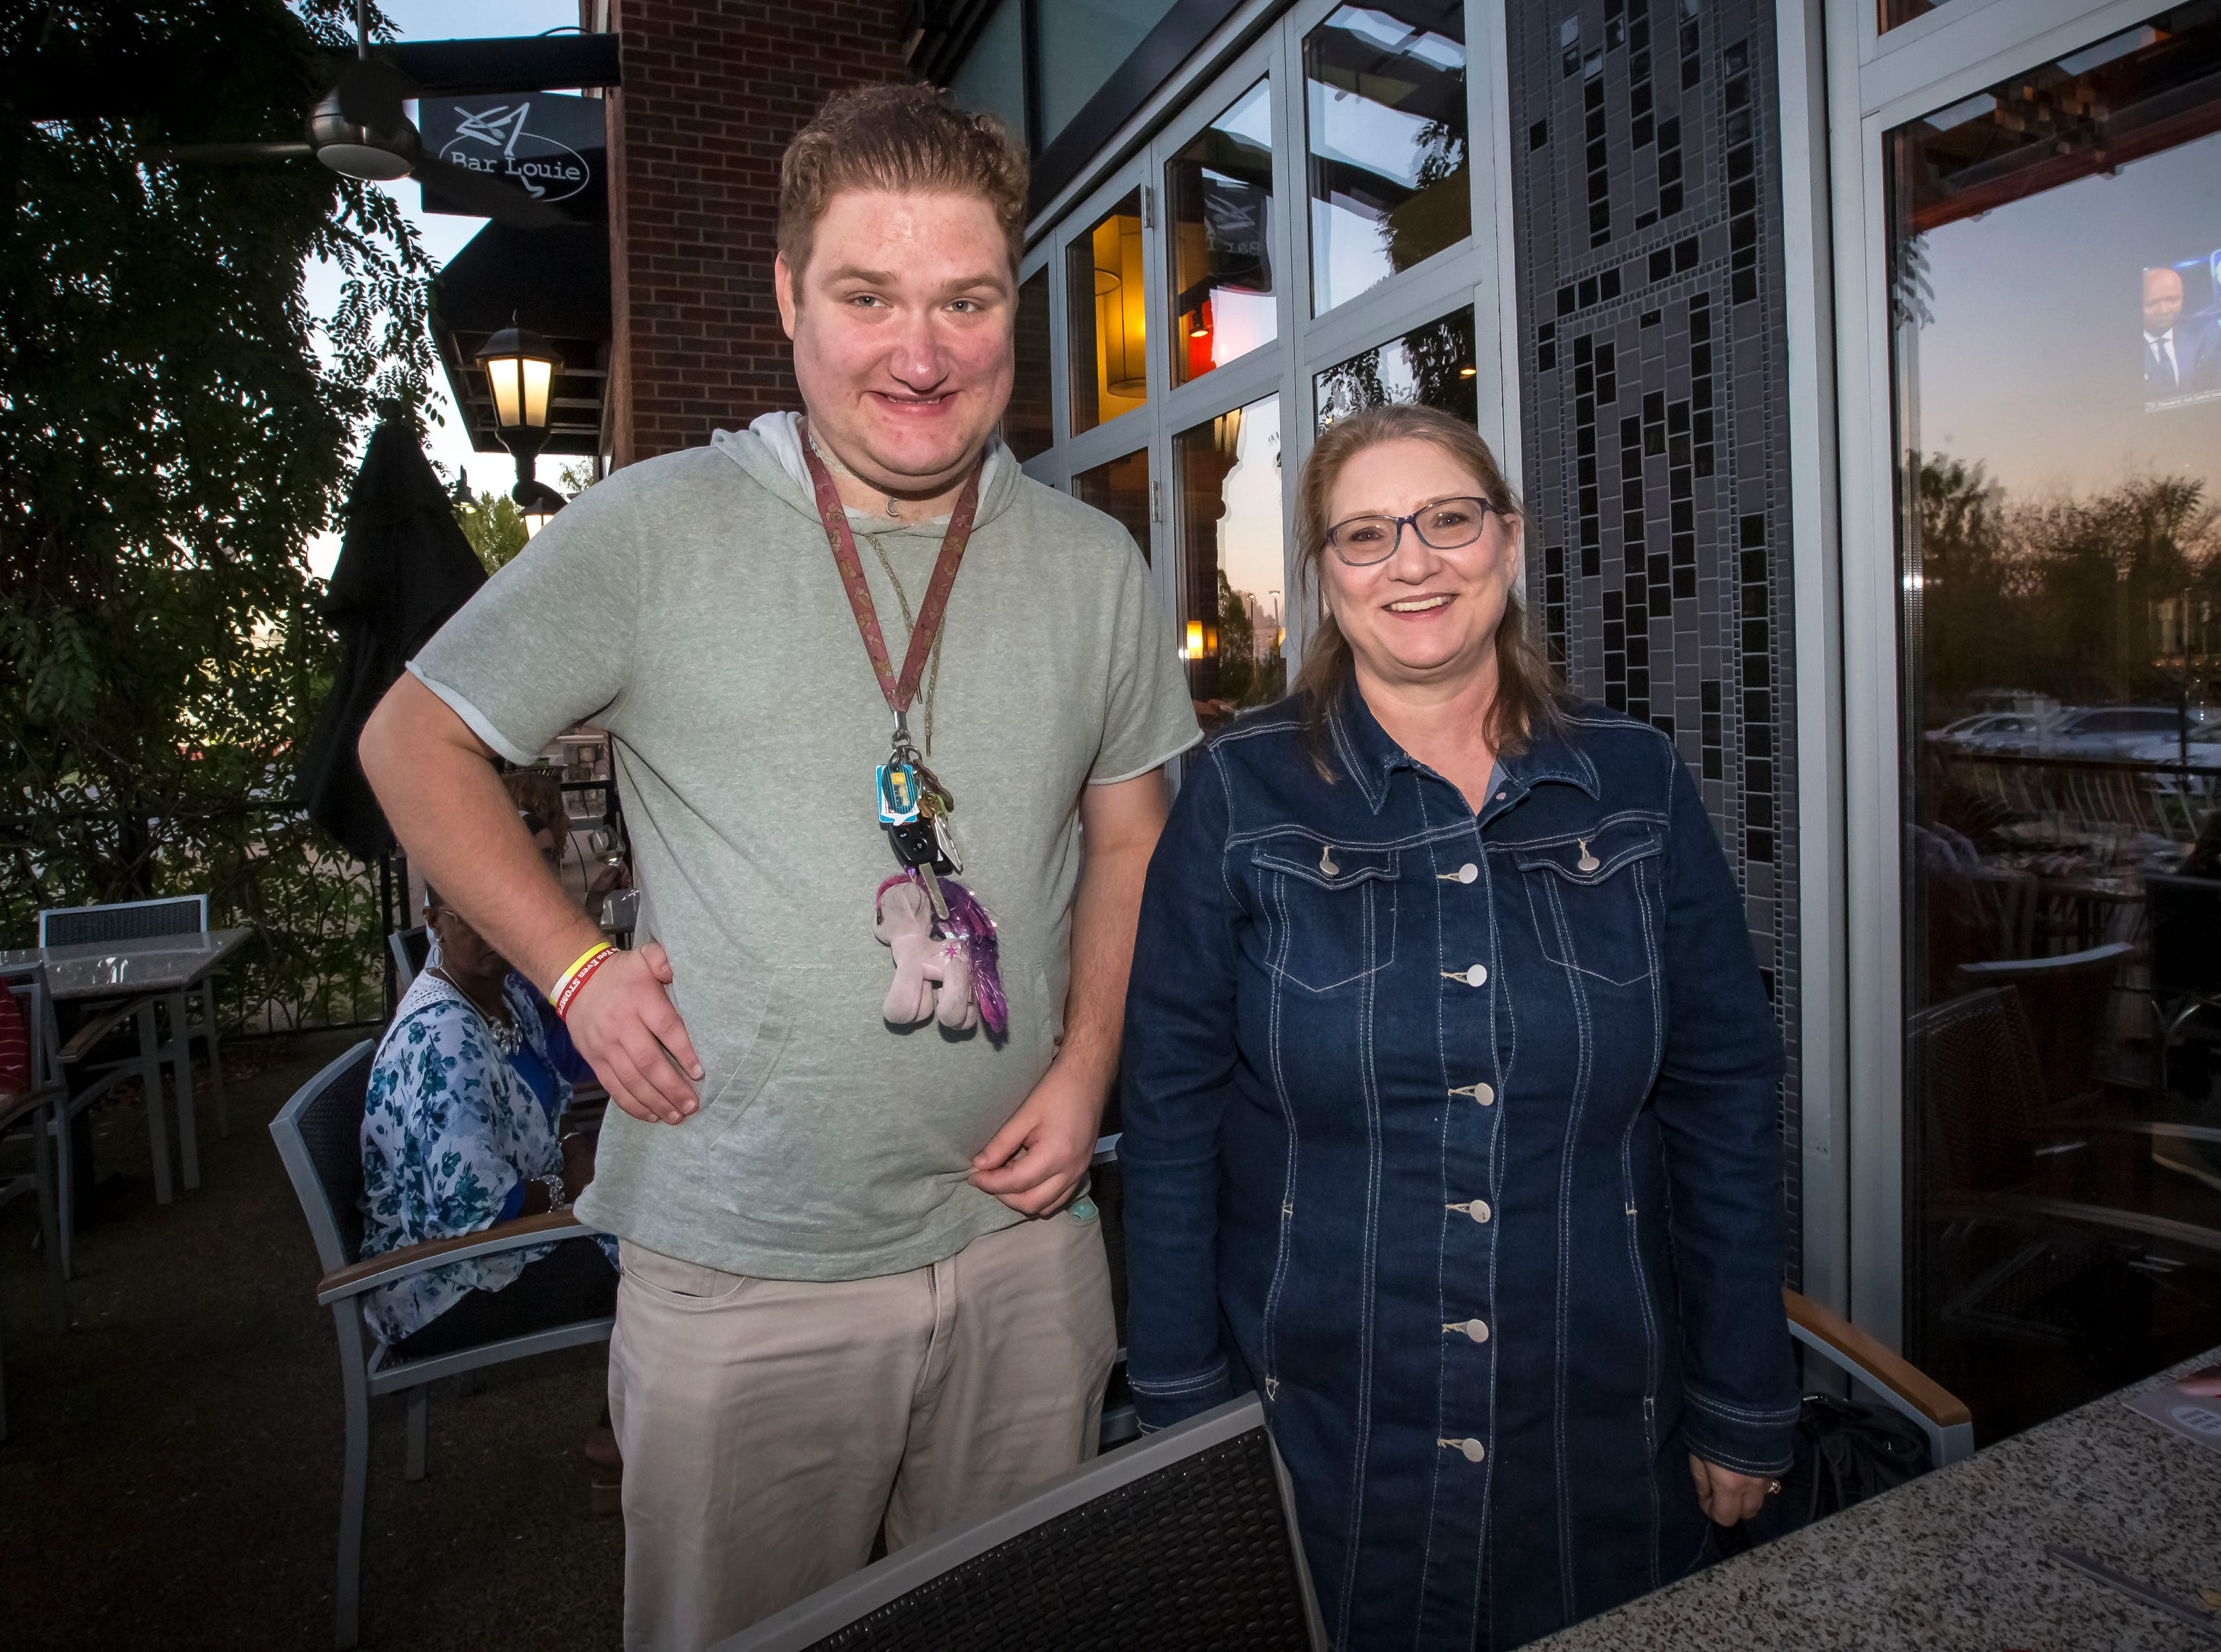 Sandra Sutton and Zach Sutton at the Murfreesboro Magazine Most Beautiful People event held at Bar Louie.